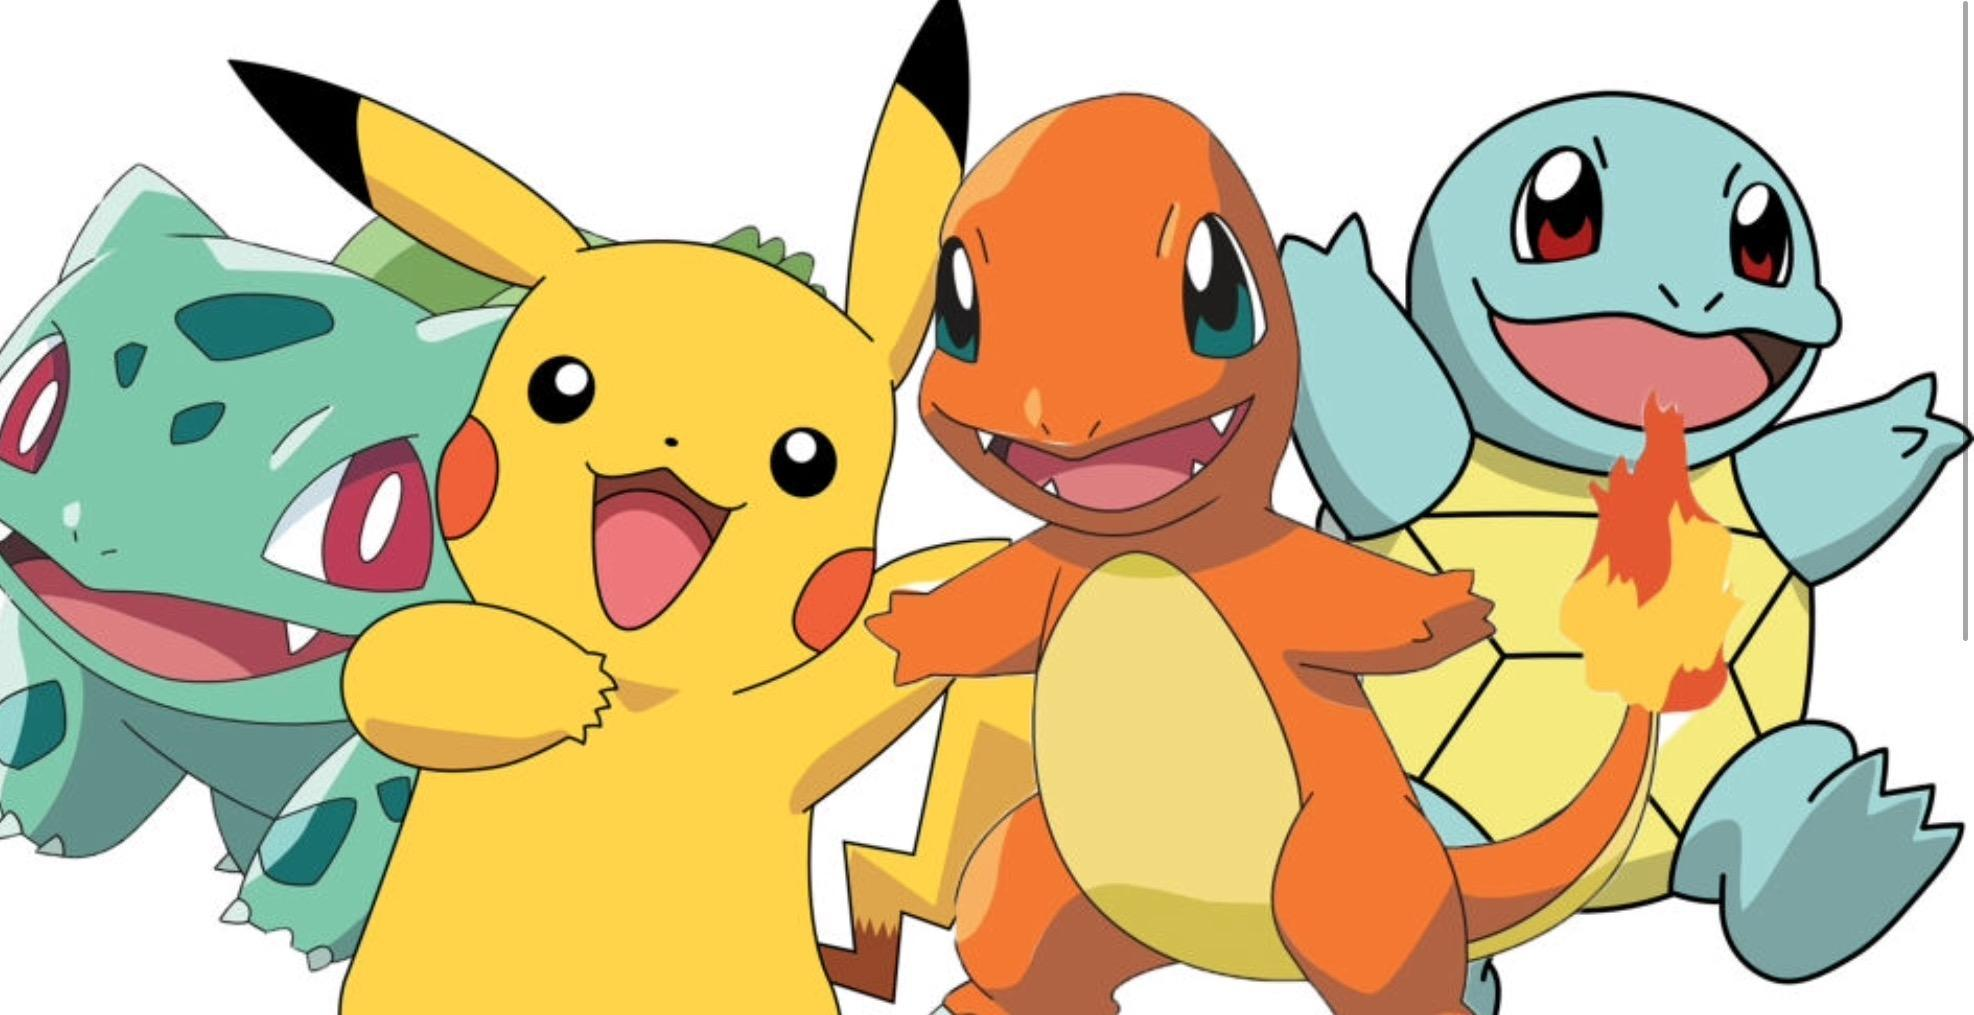 What kind of starter Pokemon are you?